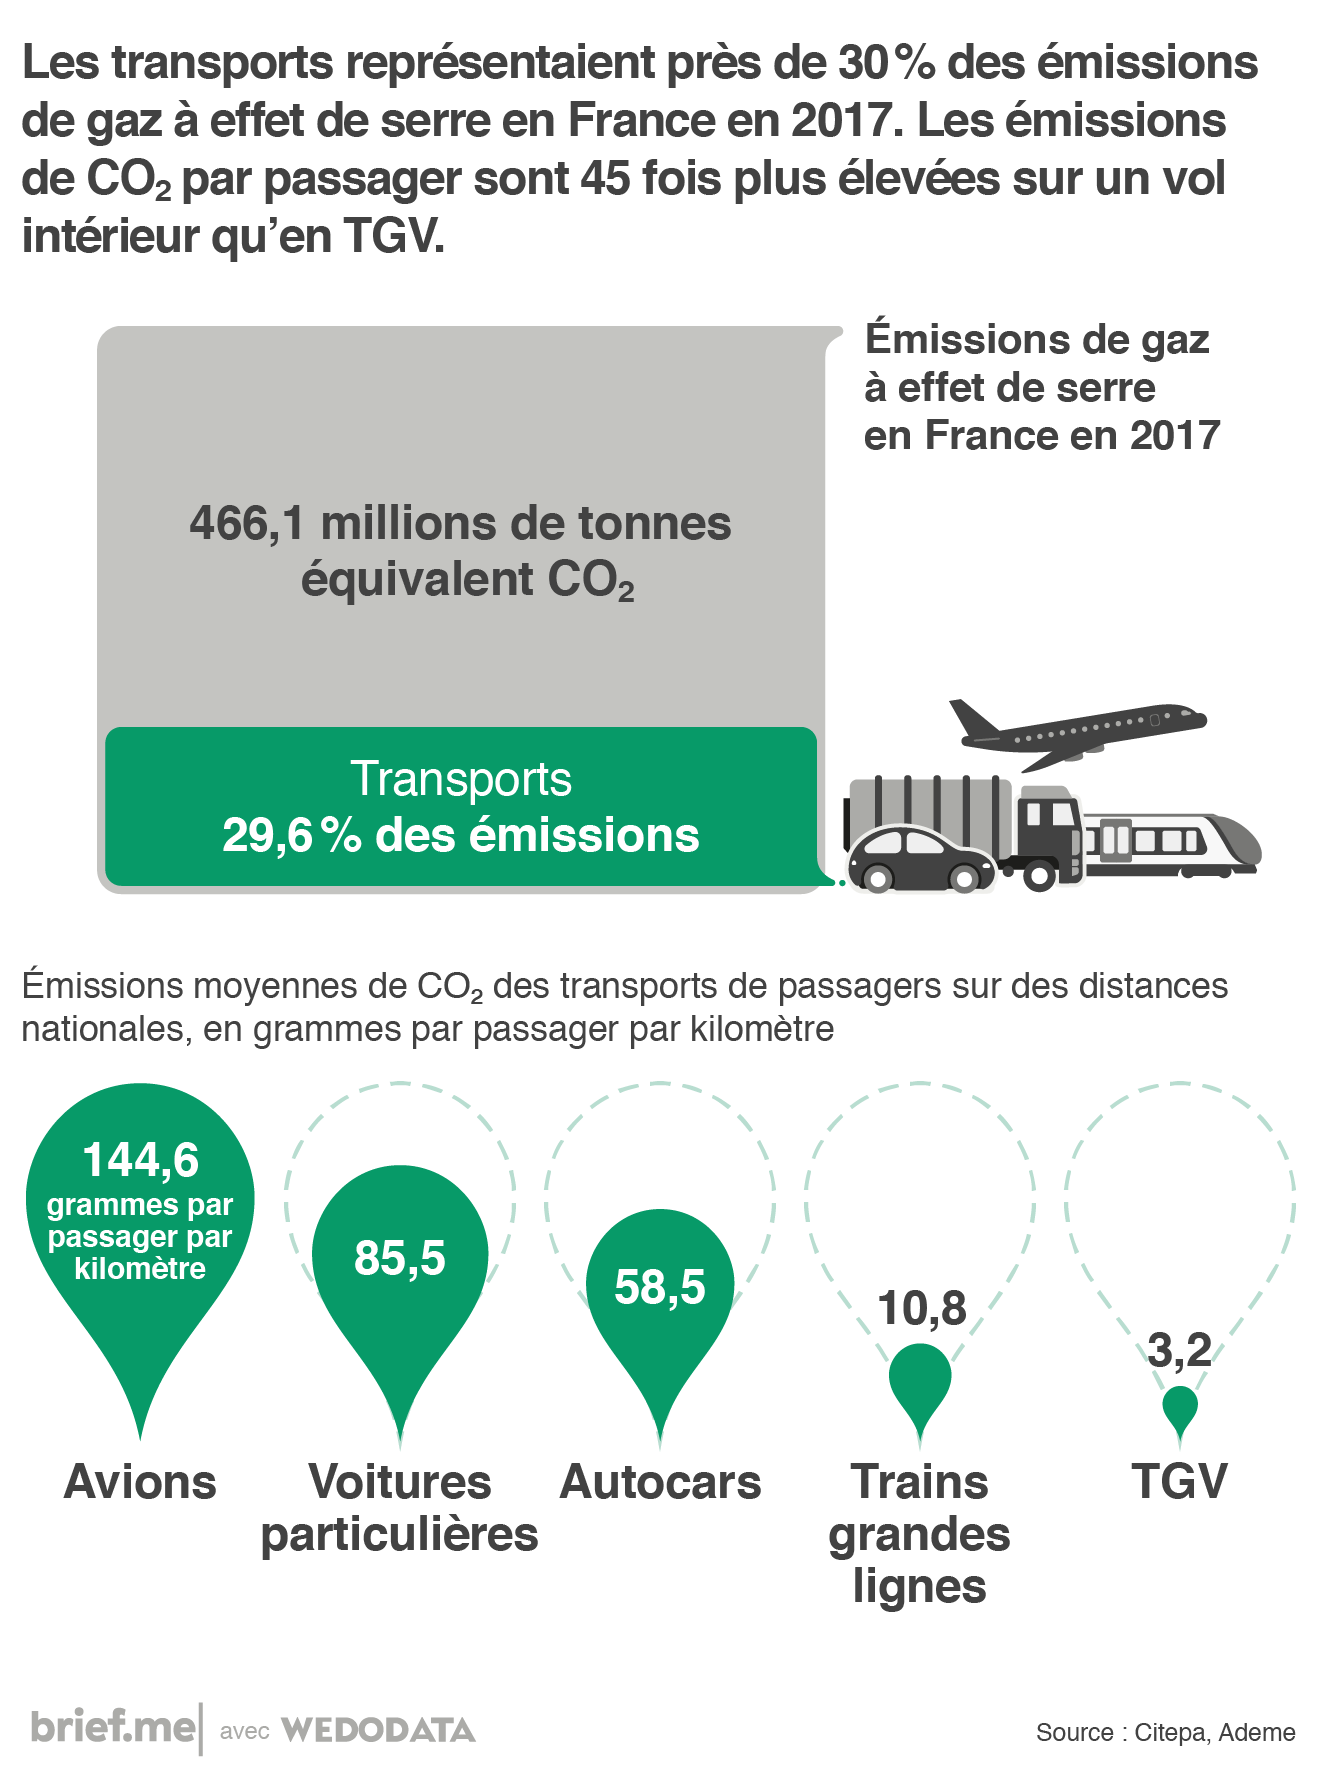 La pollution atmosphérique due aux transports